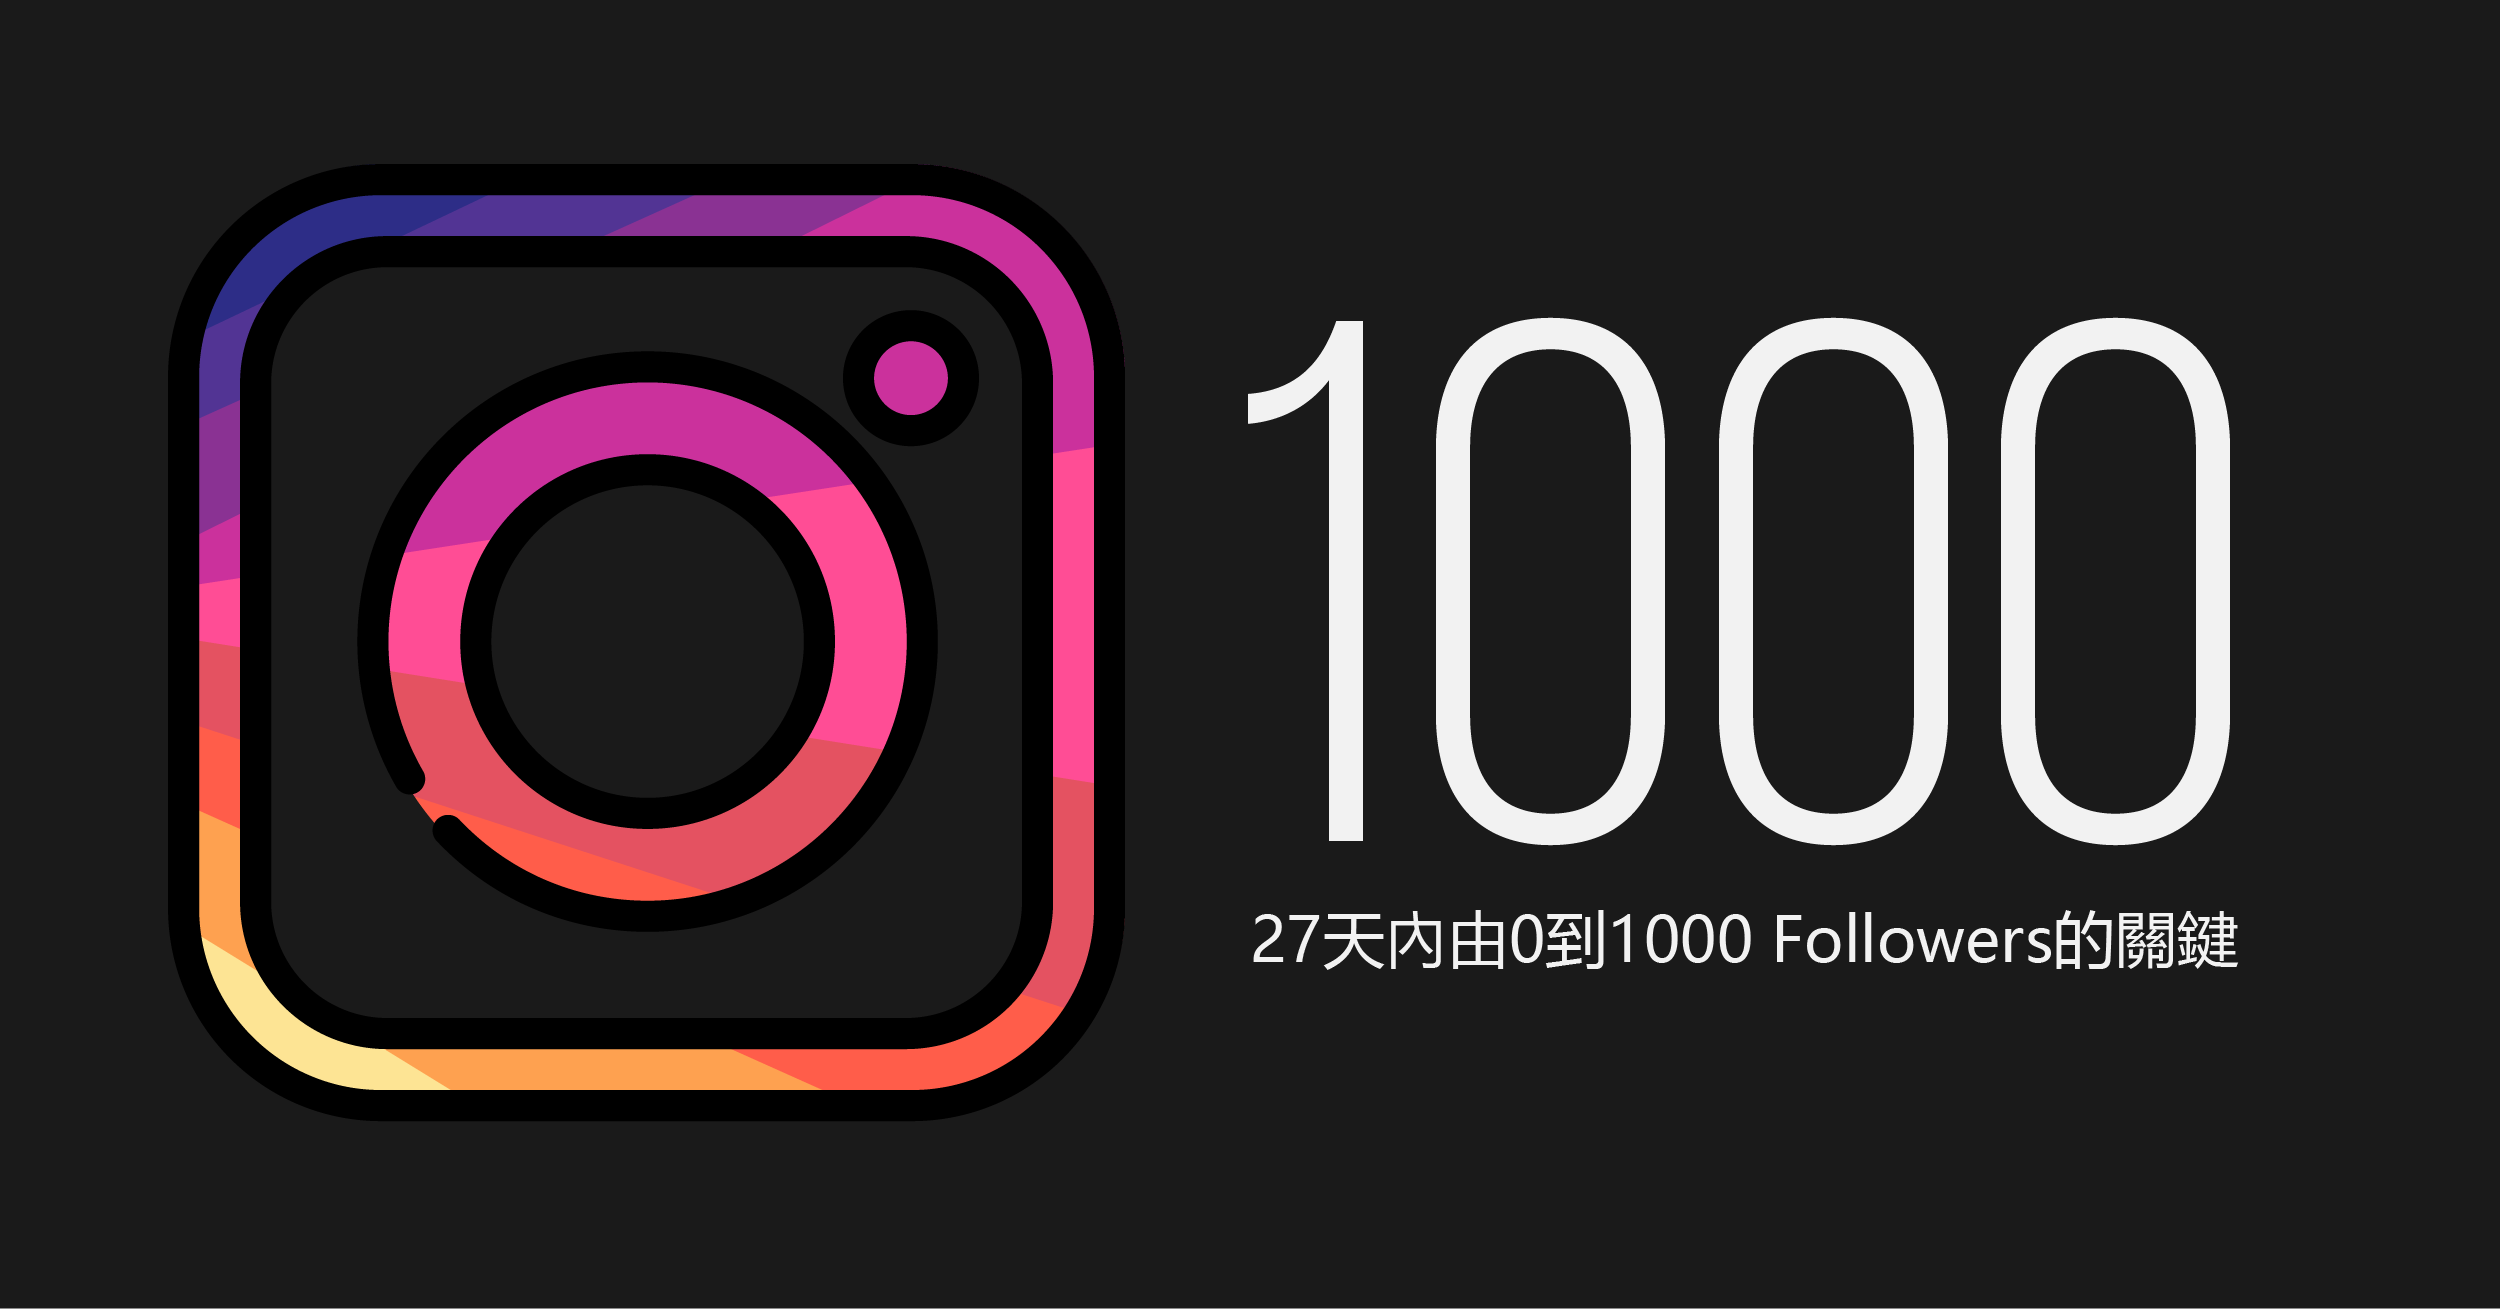 Thumbnail of Sparka Digital's blog post about gaining 1000 instagram followers